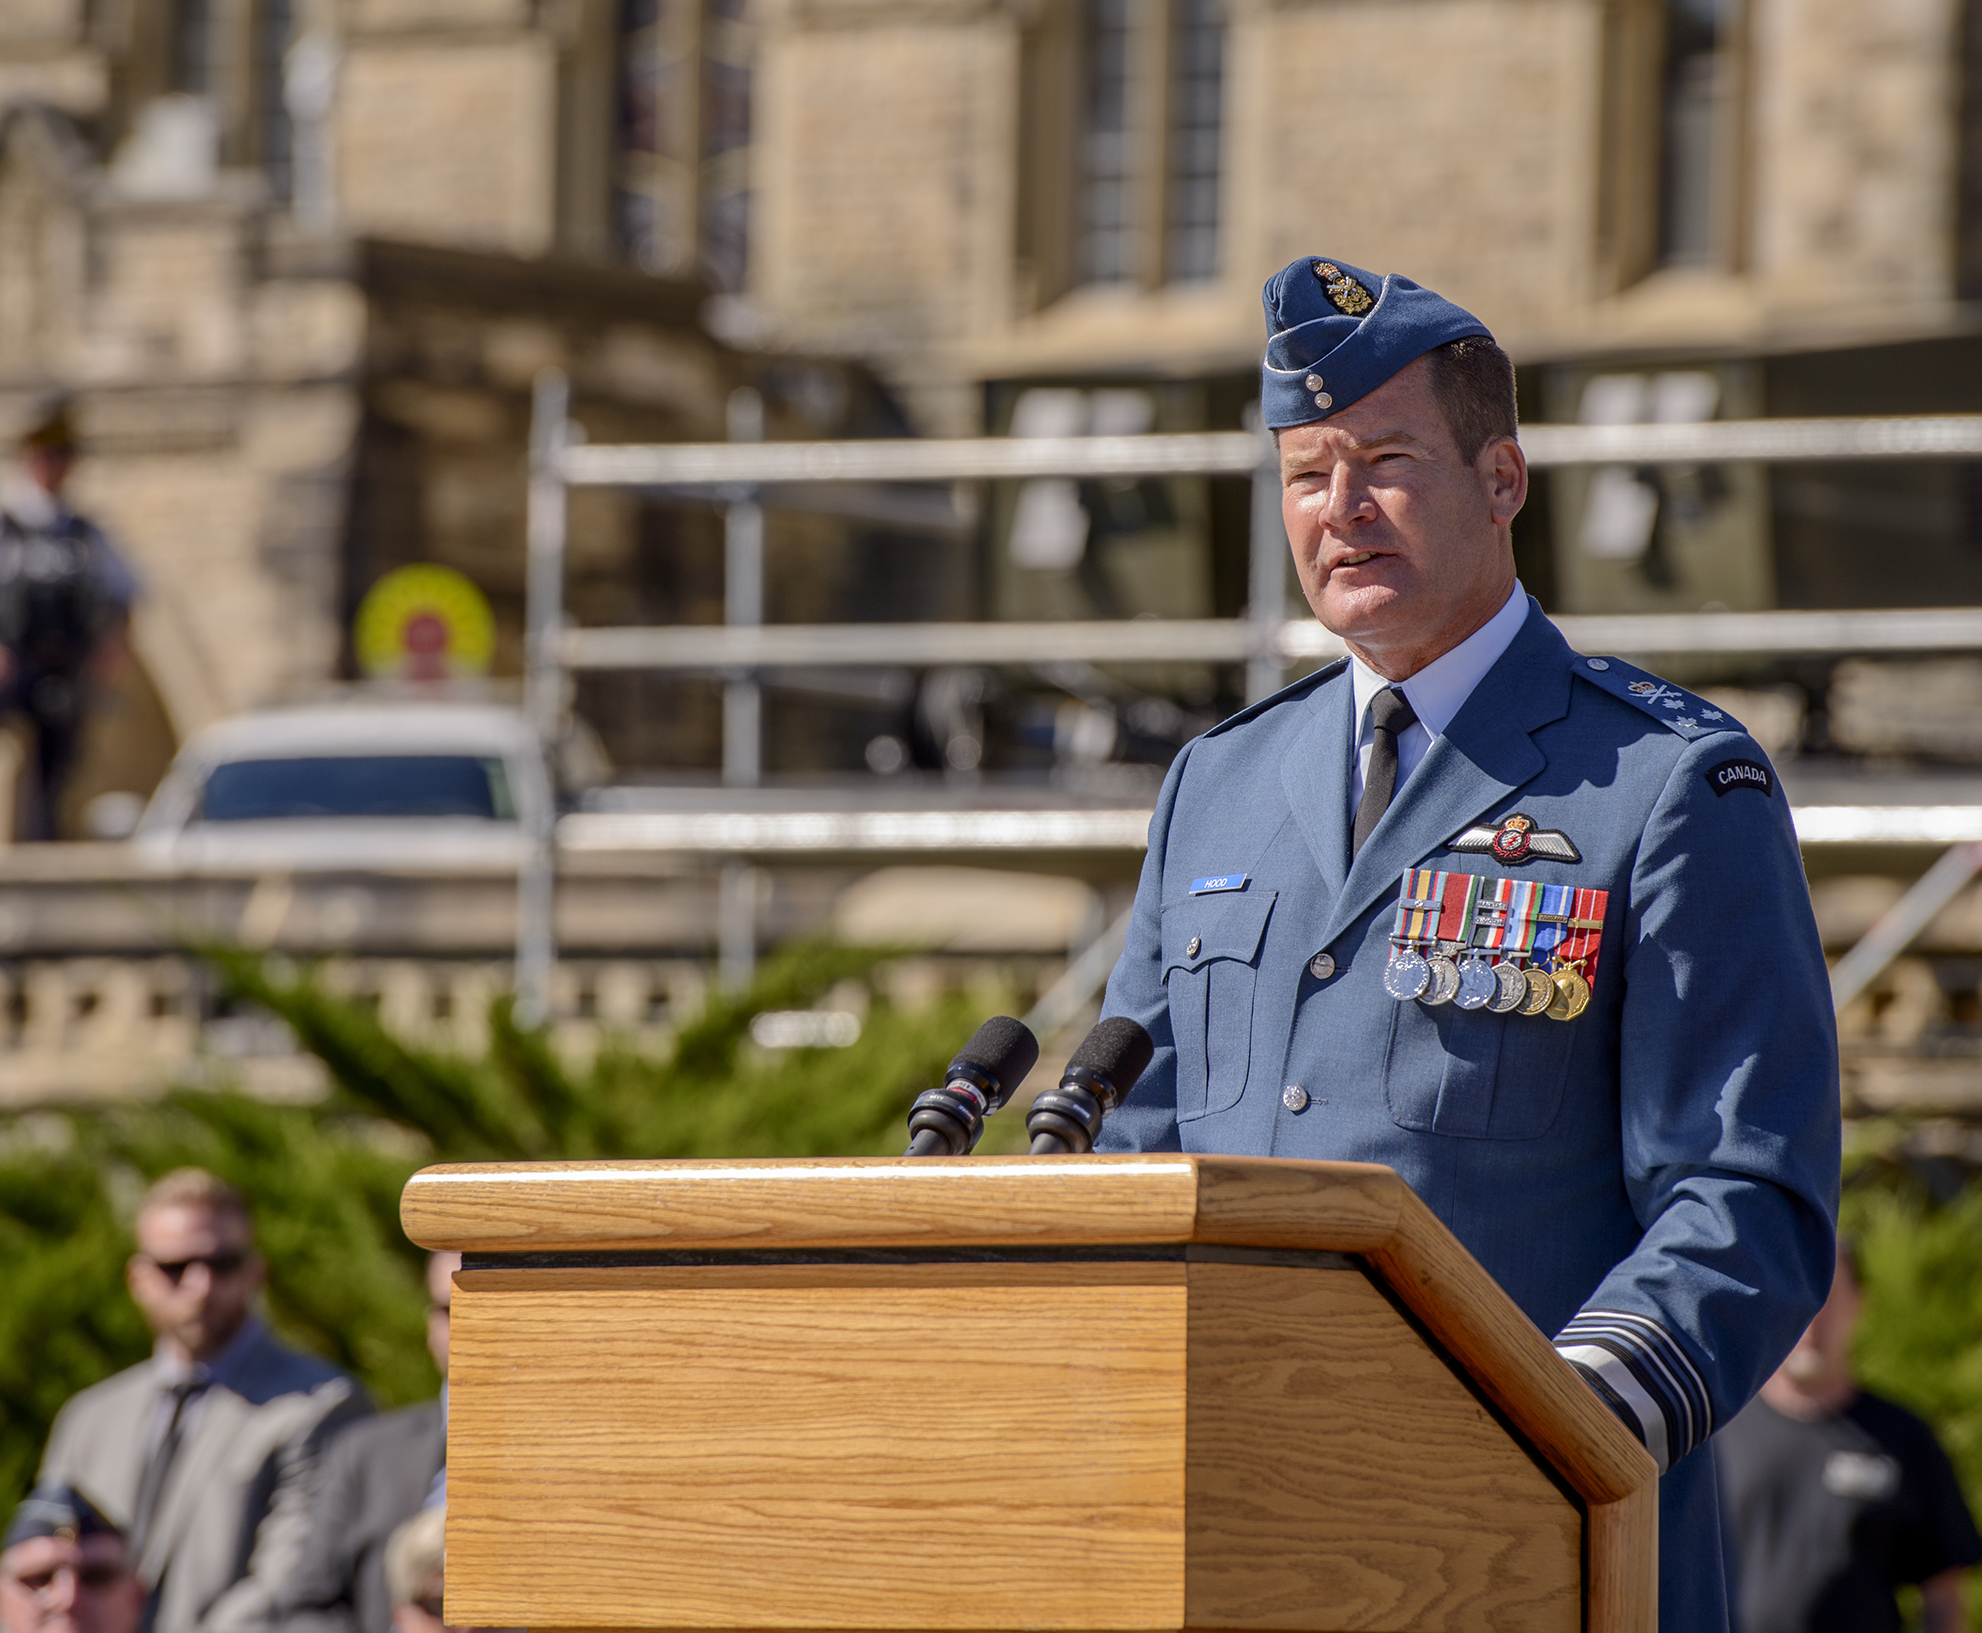 Lieutenant-General Michael Hood addresses attendees of the 75th Anniversary of the Battle of Britain Commemorative Ceremony on Parliament Hill in Ottawa, Ontario, on September 20, 2015.